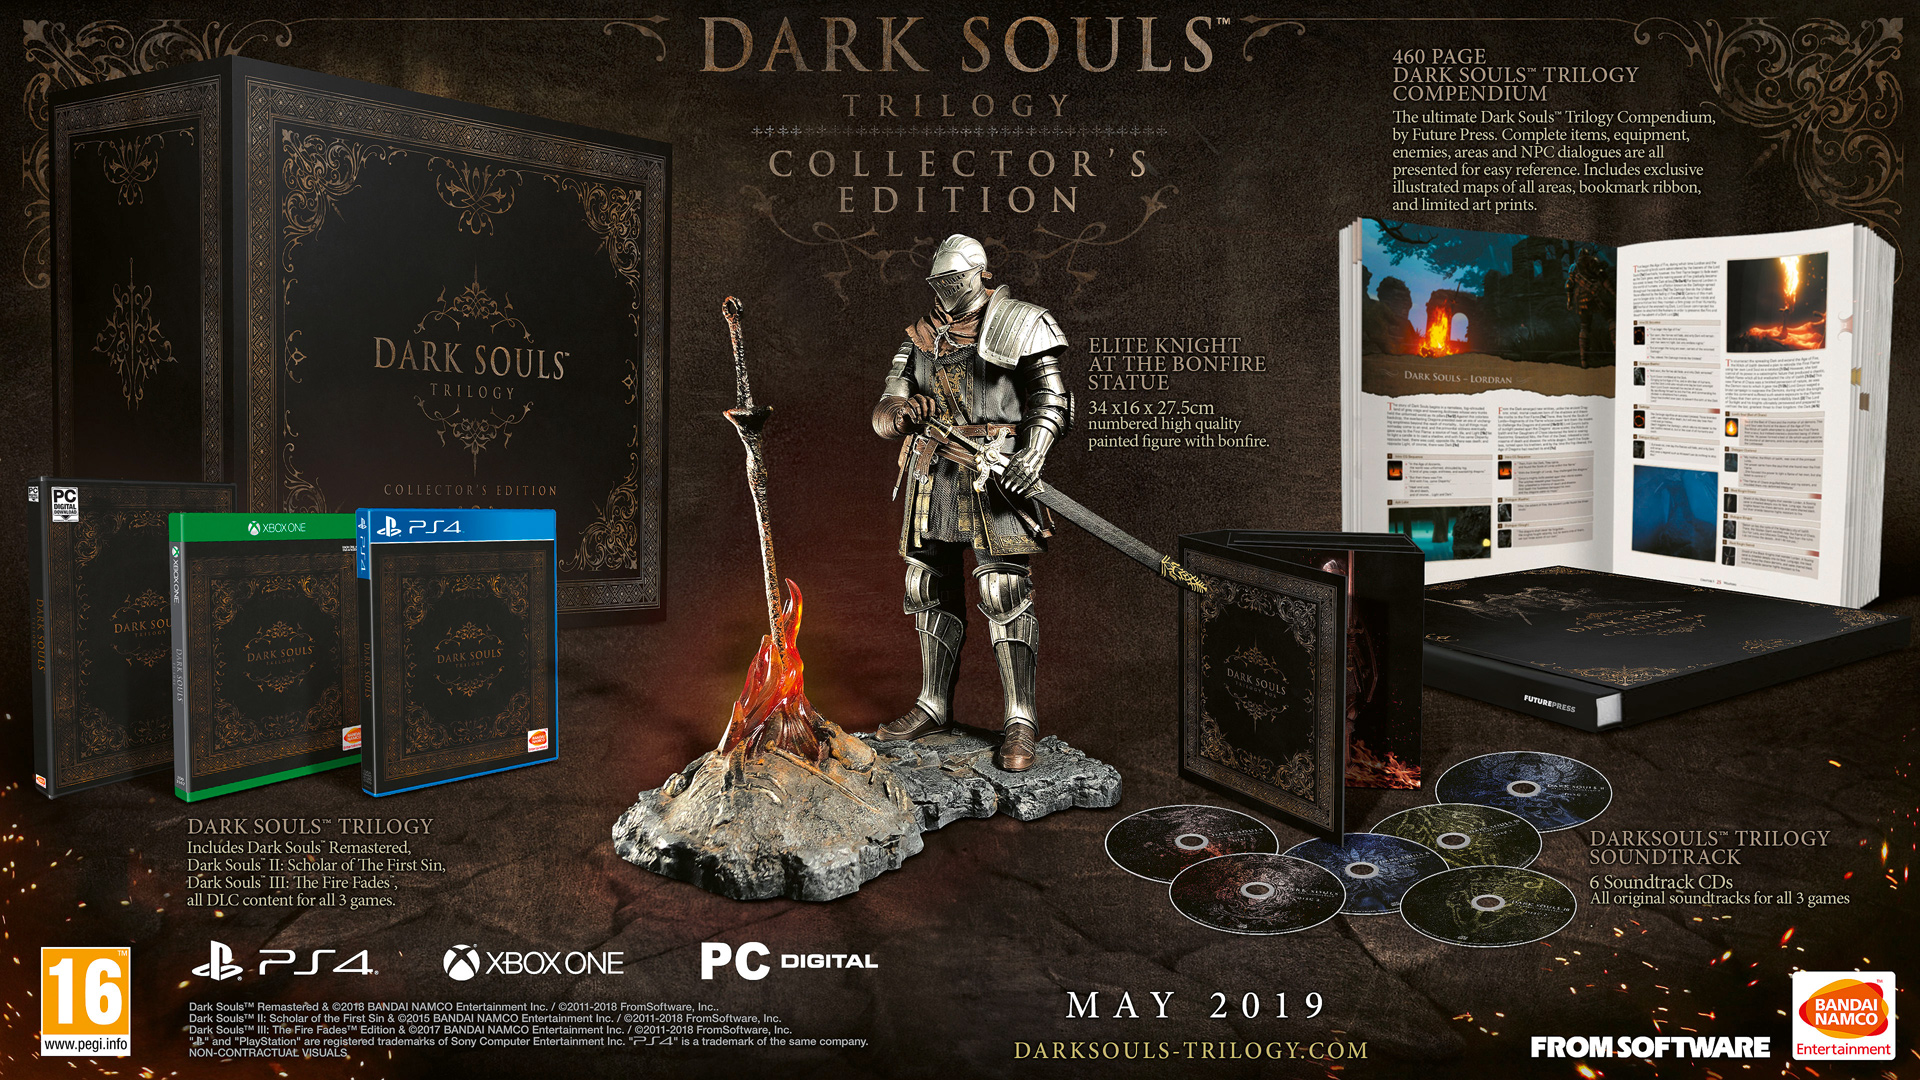 Dark Souls Trilogy Releasing In Europe With Limited Special Edition